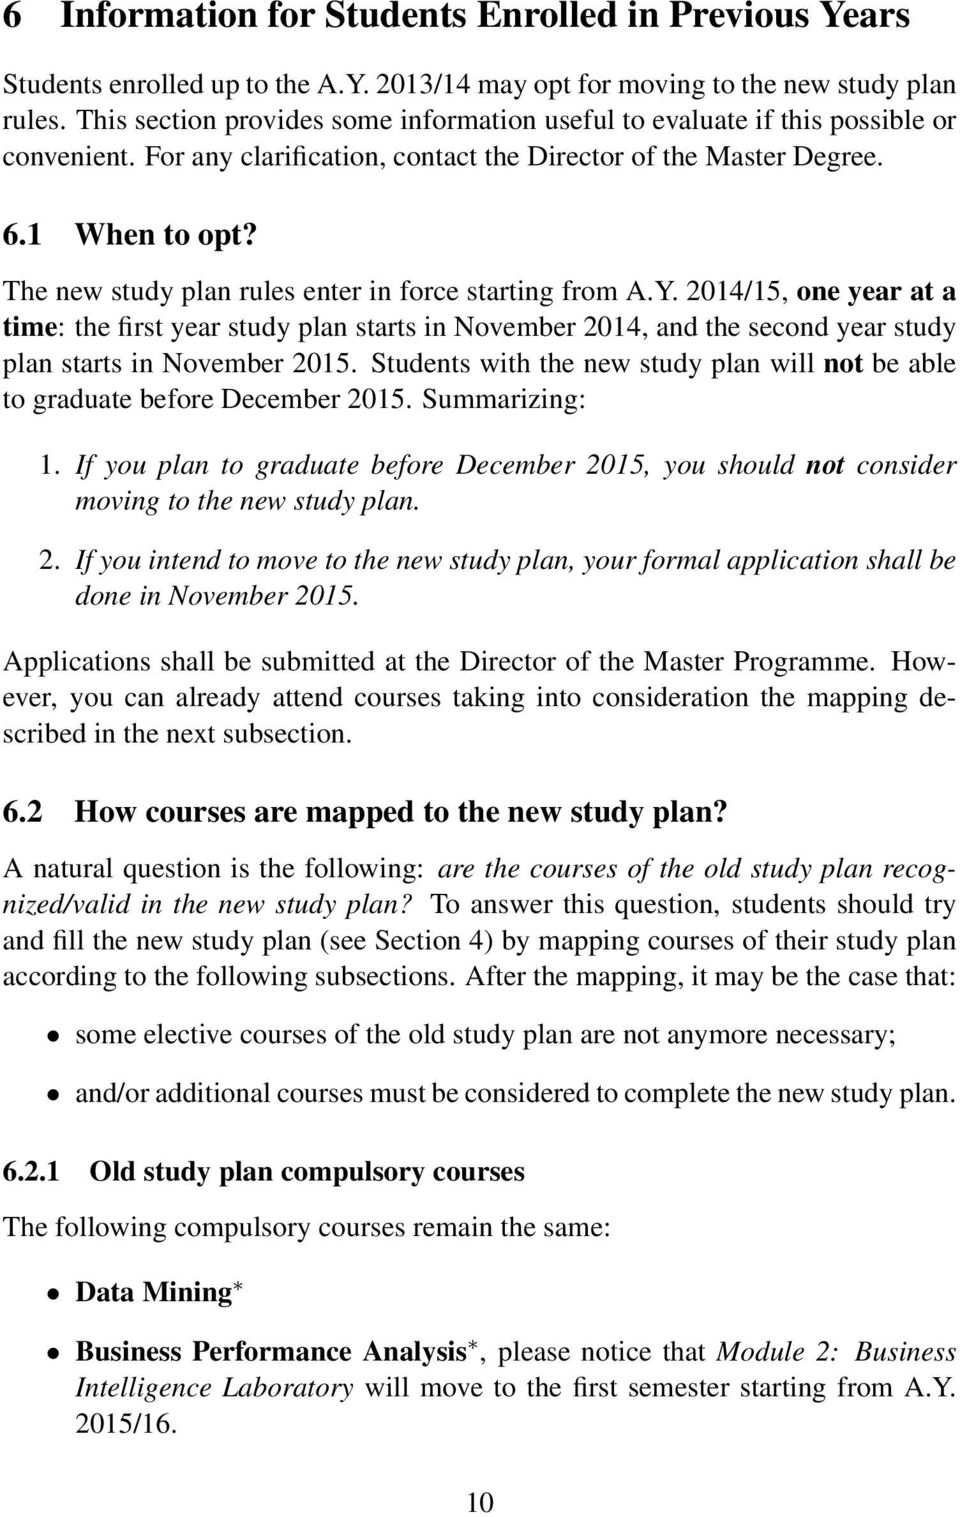 The new study plan rules enter in force starting from A.Y. 2014/15, one year at a time: the first year study plan starts in November 2014, and the second year study plan starts in November 2015.